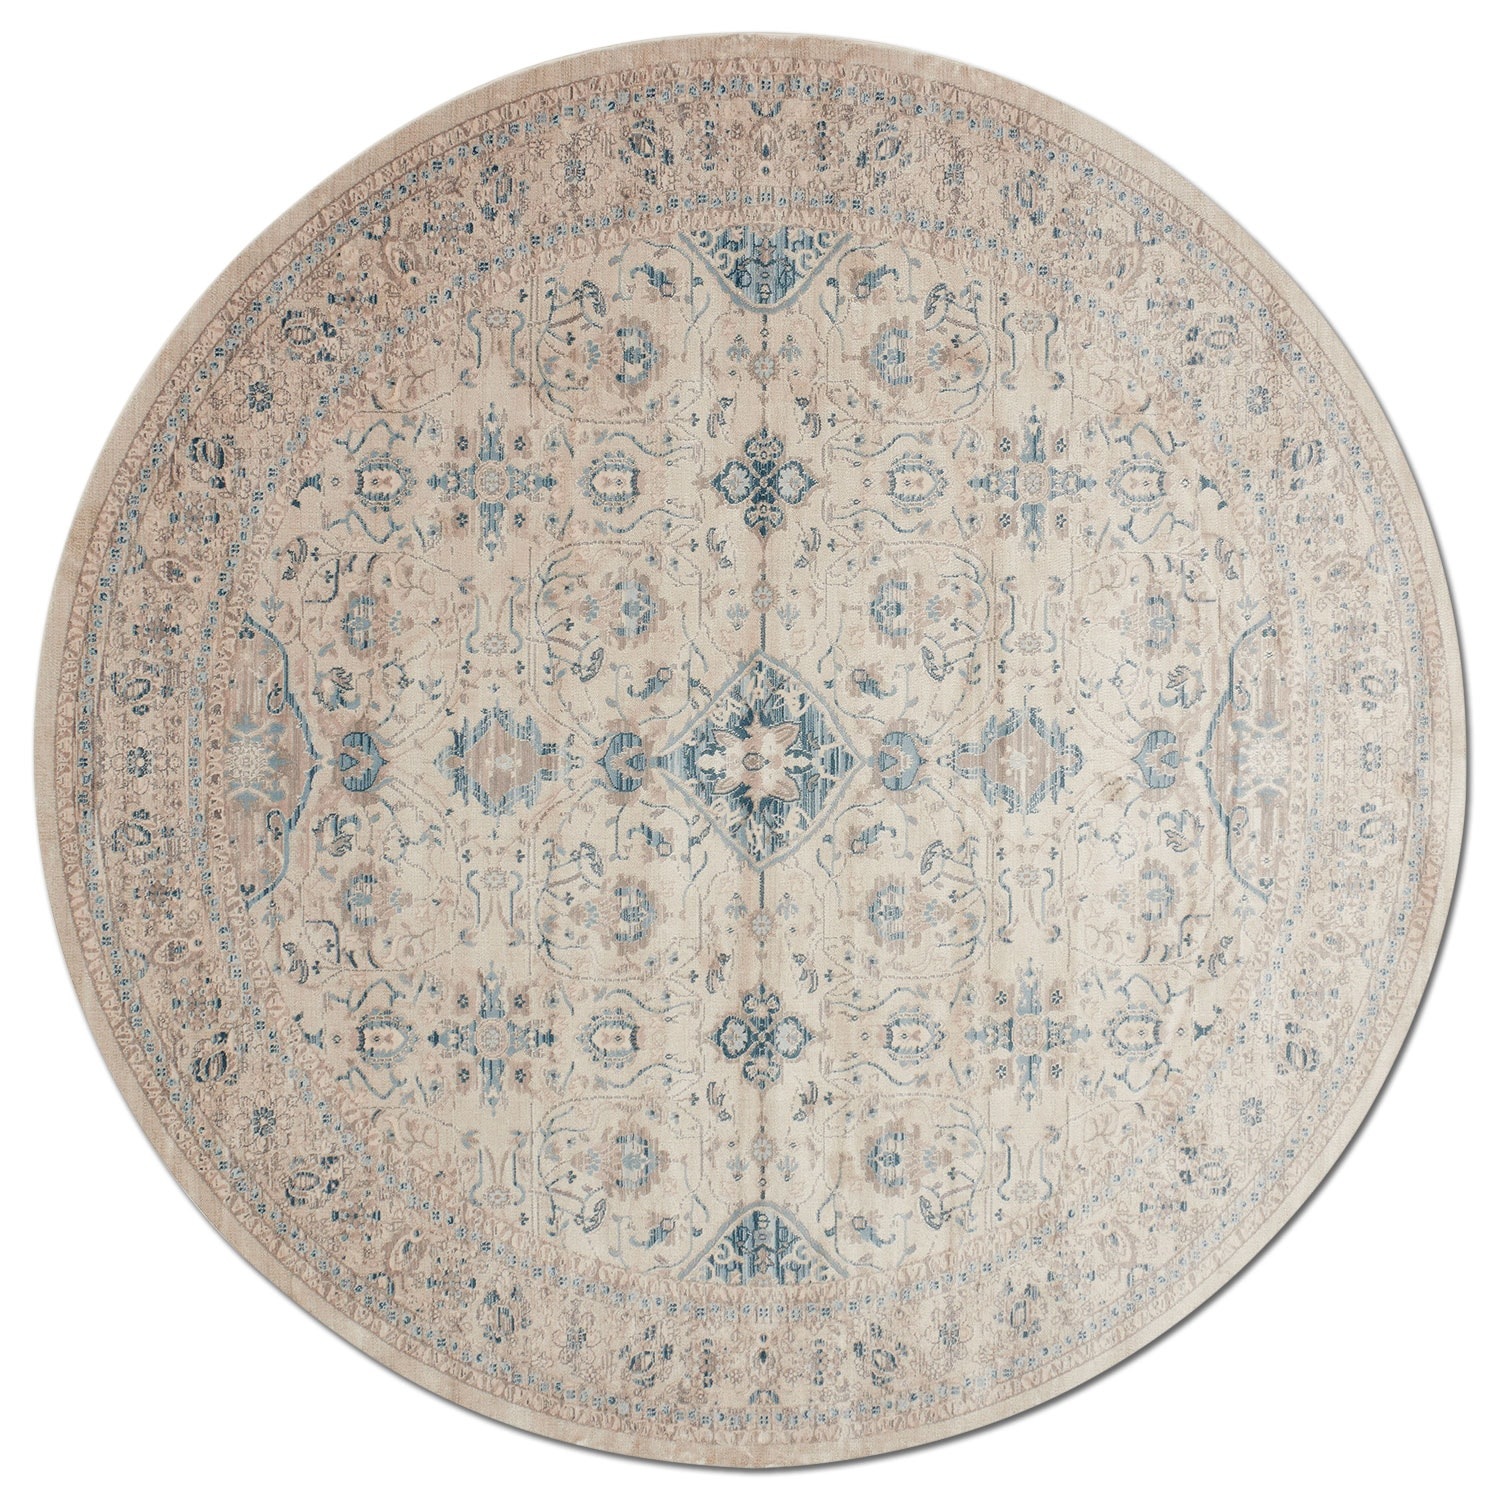 Ella Rose 8' Round Rug - Bone